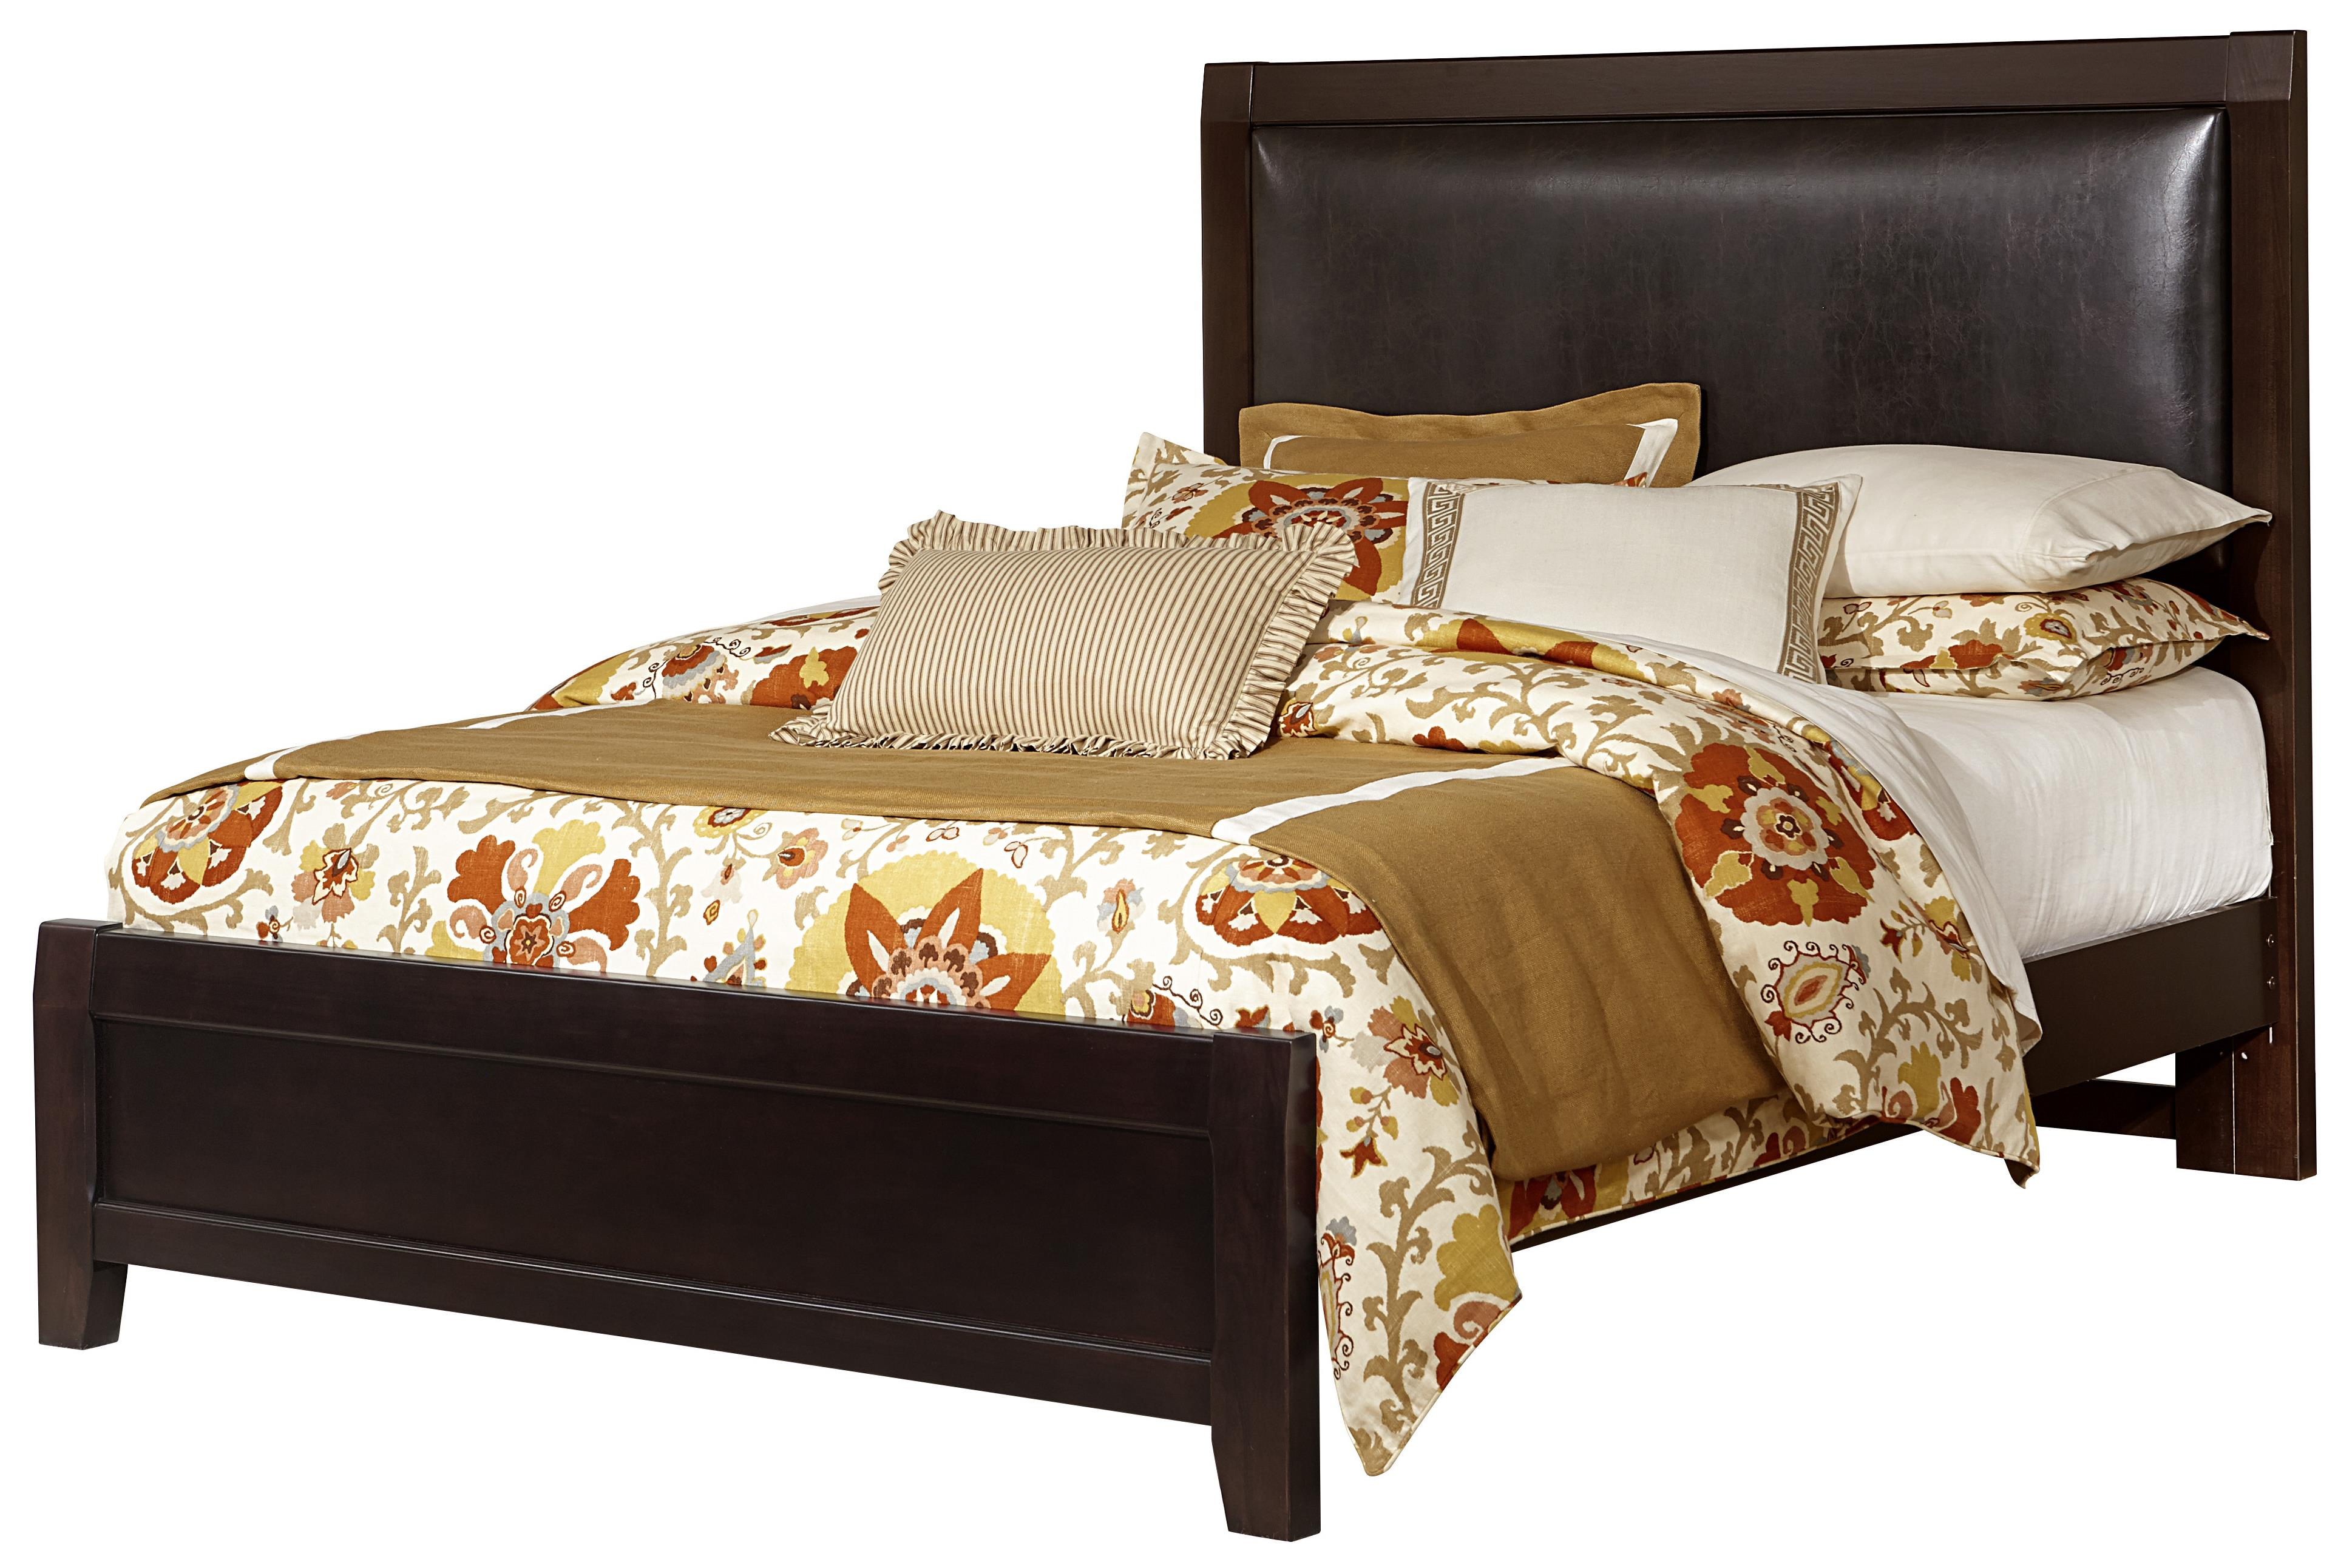 Vaughan Bassett Bedford Queen Bed w/ Bonded Leather Uph. Headboard - Item Number: BB88-551+155+922